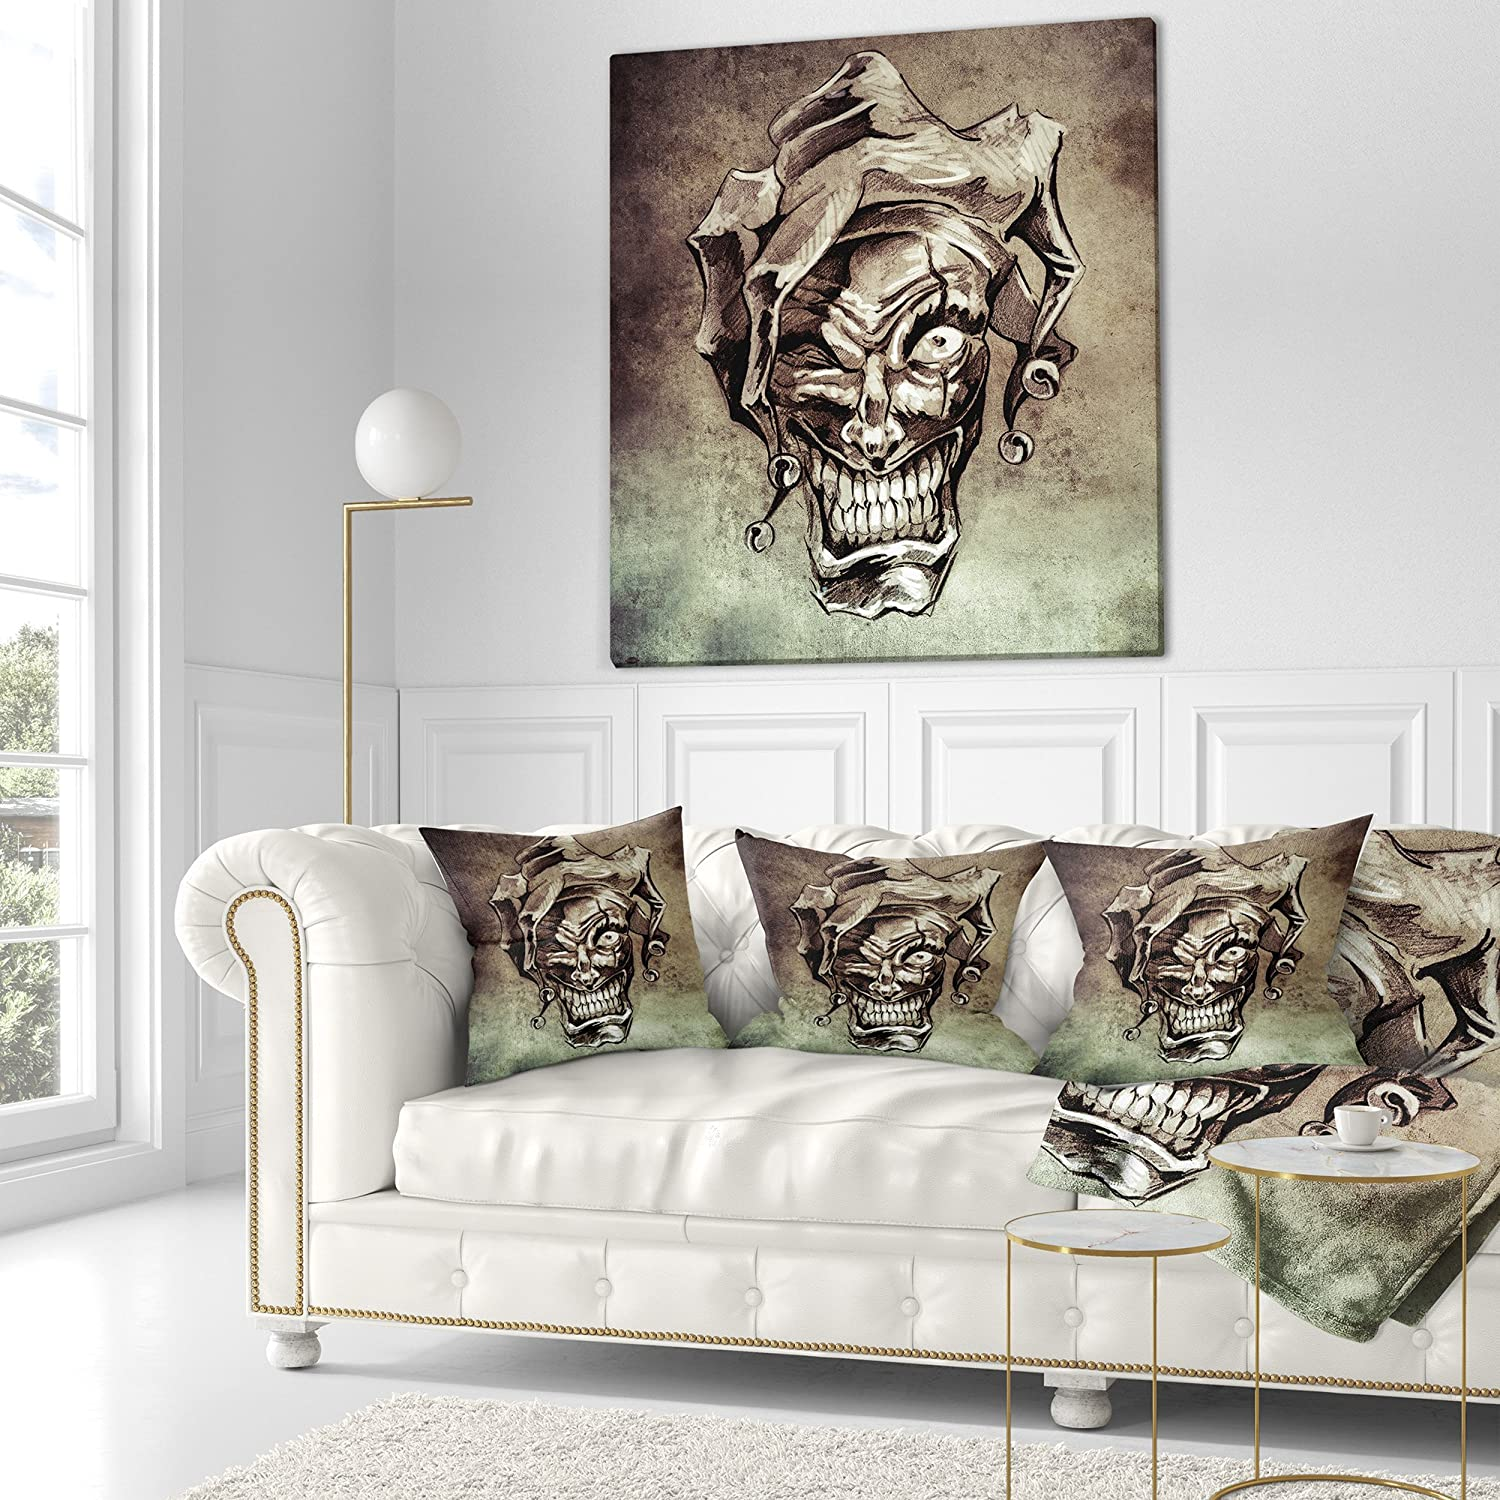 Designart CU7822-18-18 Fantasy Clown Joker Tattoo Sketch Abstract Cushion Cover for Living Room Sofa Throw Pillow 18 x 18